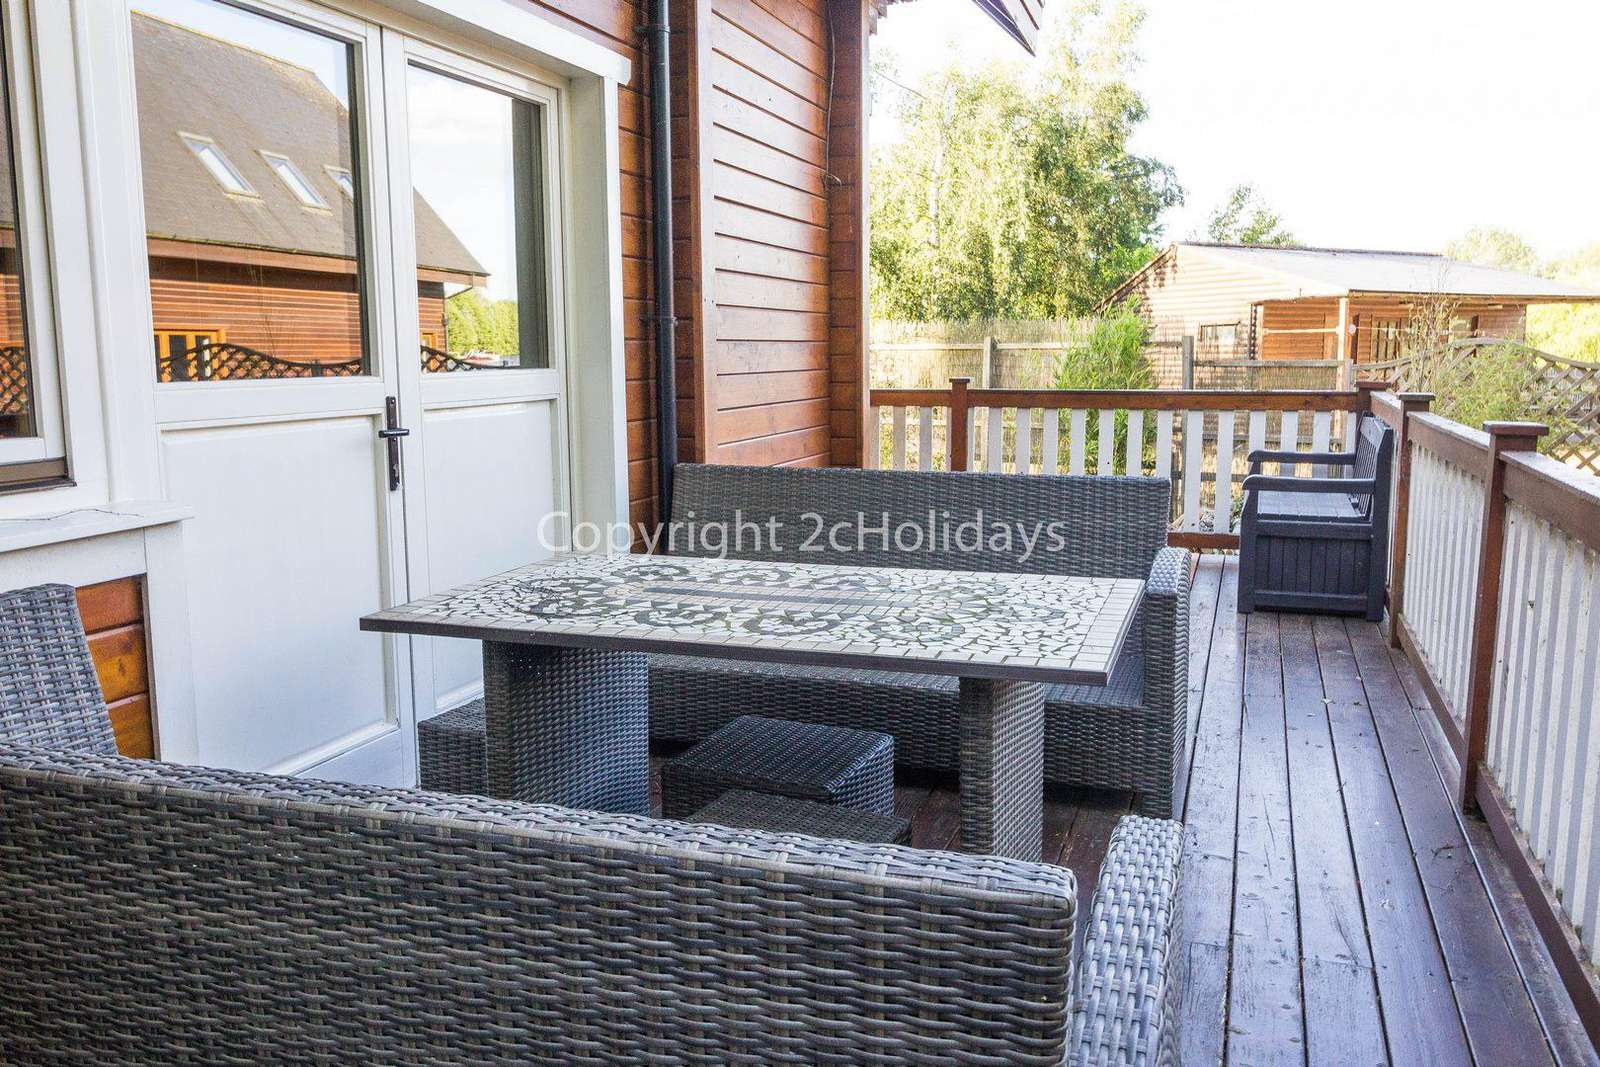 Great patio area with space for a BBQ